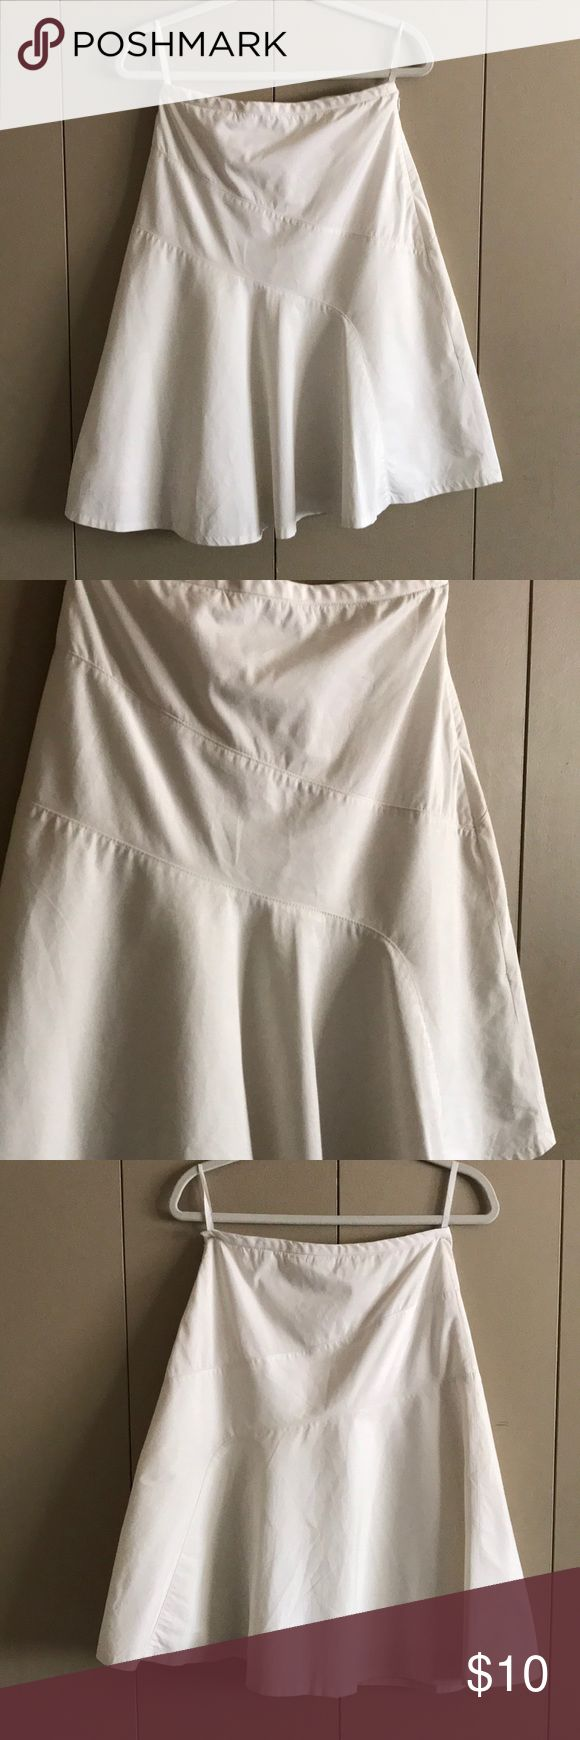 GAP Stretch A Line Skirt Great for spring! Fully lined white a line skirt. Hook and eye is broken but side sip is fully functional. 27 inch waist; 24 inches long. Open to offers. GAP Skirts A-Line or Full